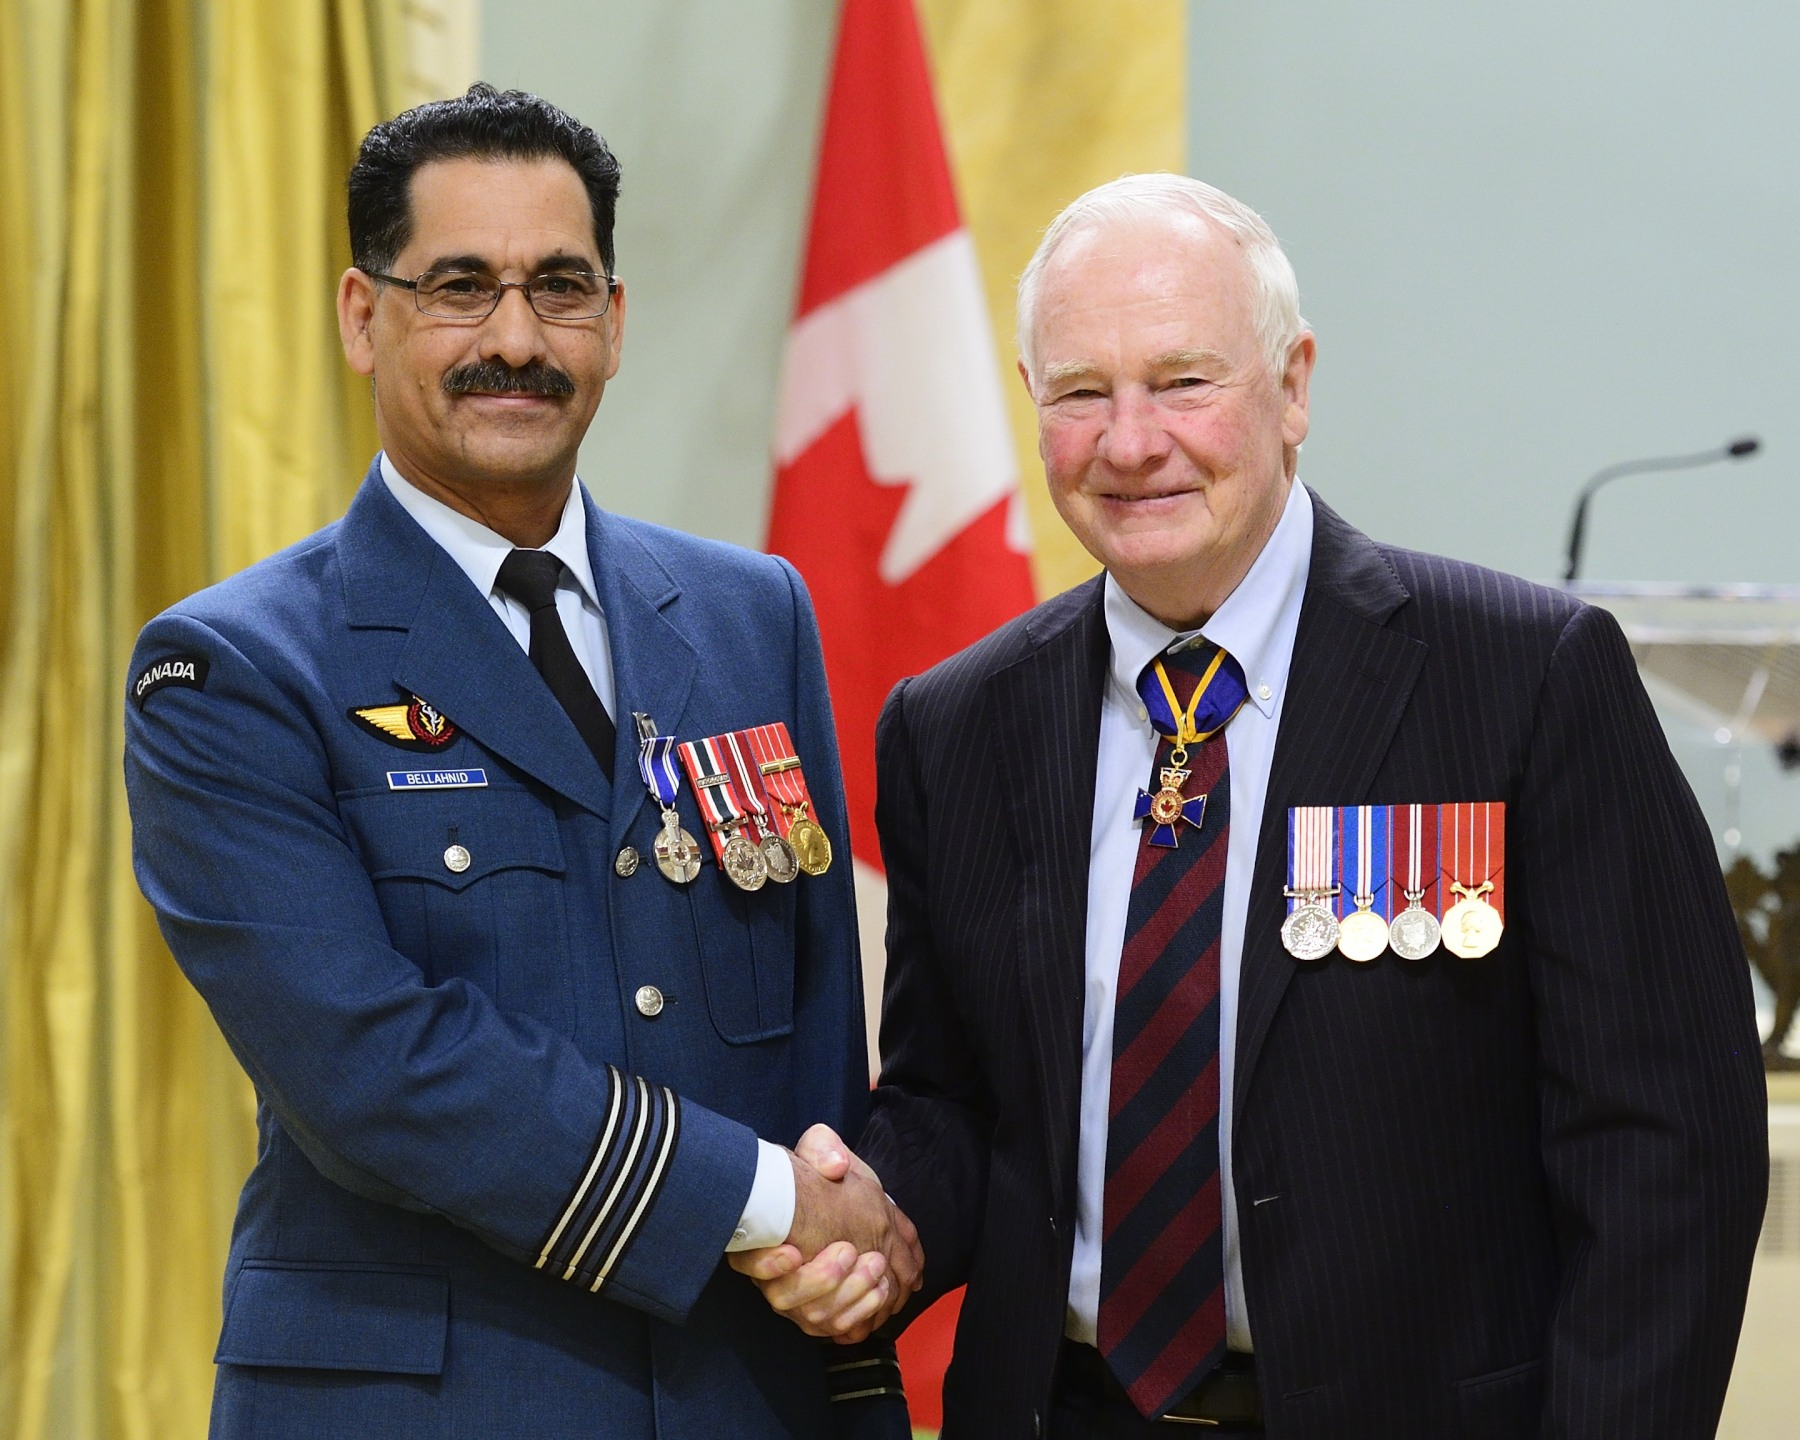 From 2008 to 2014, Lieutenant-Colonel Abderrahim Bellahnid, M.S.M., C.D. demonstrated outstanding leadership and technical knowledge as director of Project MERCURY GLOBAL, which aims to improve wideband satellite communication capacity. He successfully led a team of specialists during negotiations with the United States Air Force, under tight deadlines, to allow Canada's participation in initiatives related to the wideband global satellite communications system. Lieutenant-Colonel Bellahnid's professionalism brought great honour to the Canadian Armed Forces and to Canada.